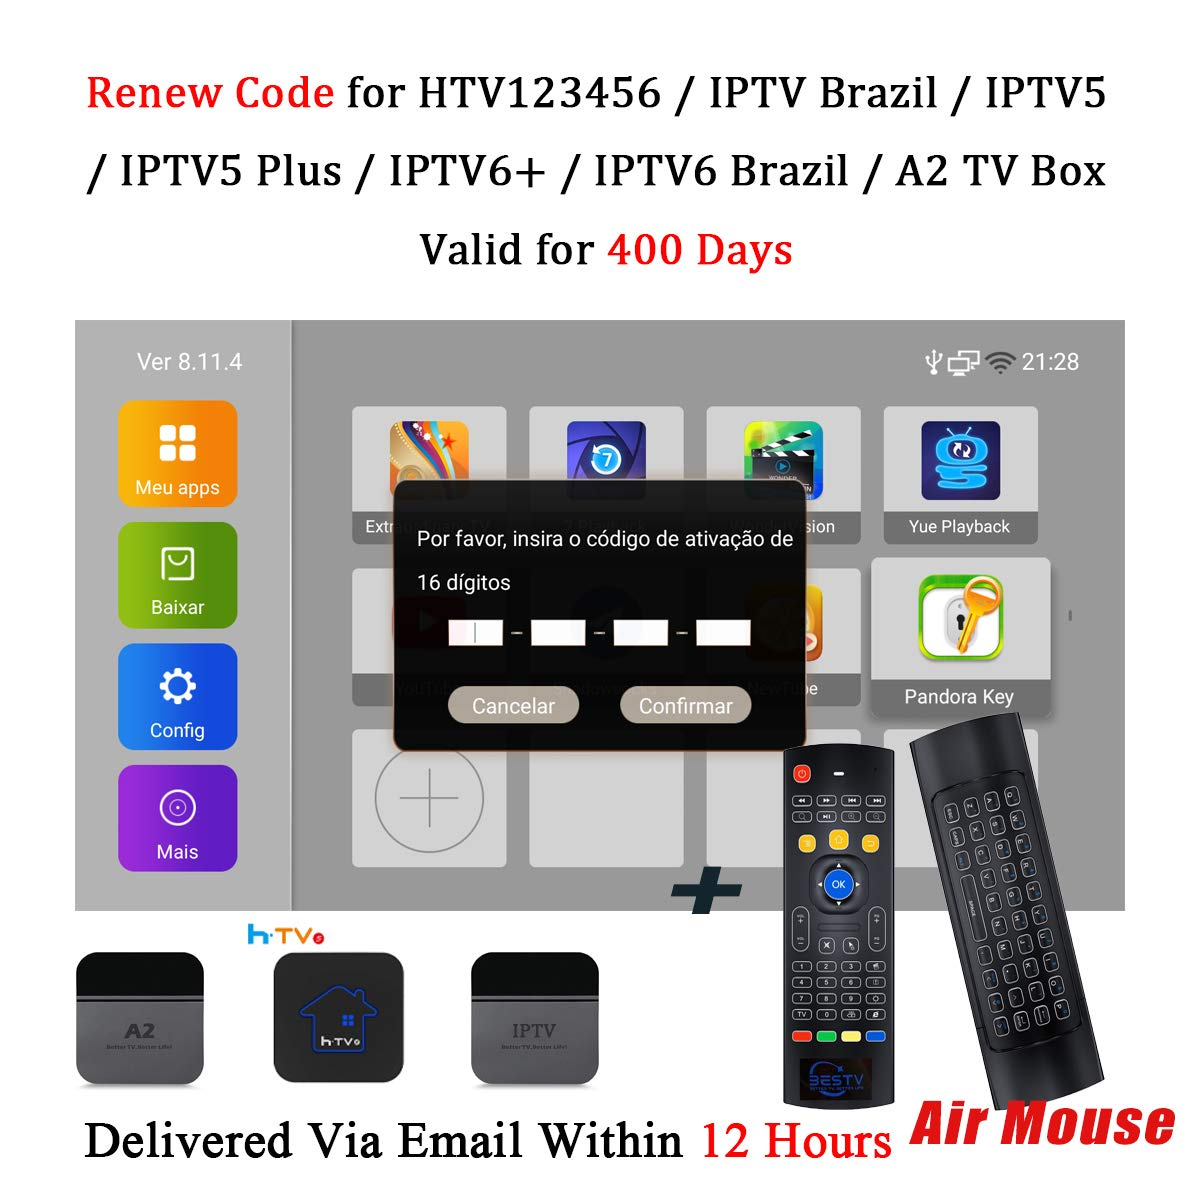 Renew Code for HTV 5 6 4 3 2 1 IPTV Brazil Box IPTV 6 5 Plus + Brazilian Subscription with Free WiFi Keyboard by BestTV